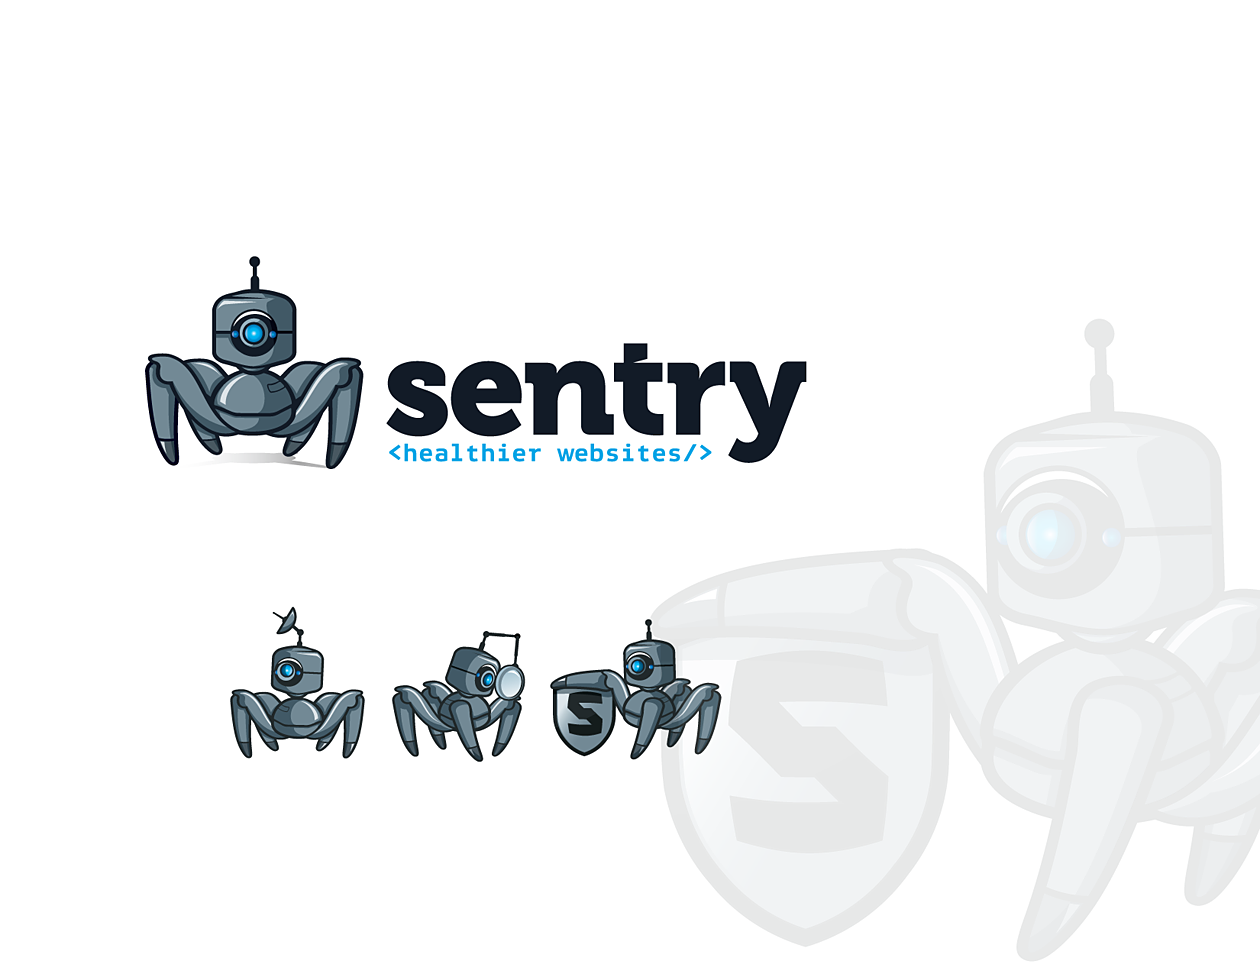 Help shape our new business, Sentry, with a clean slate logo